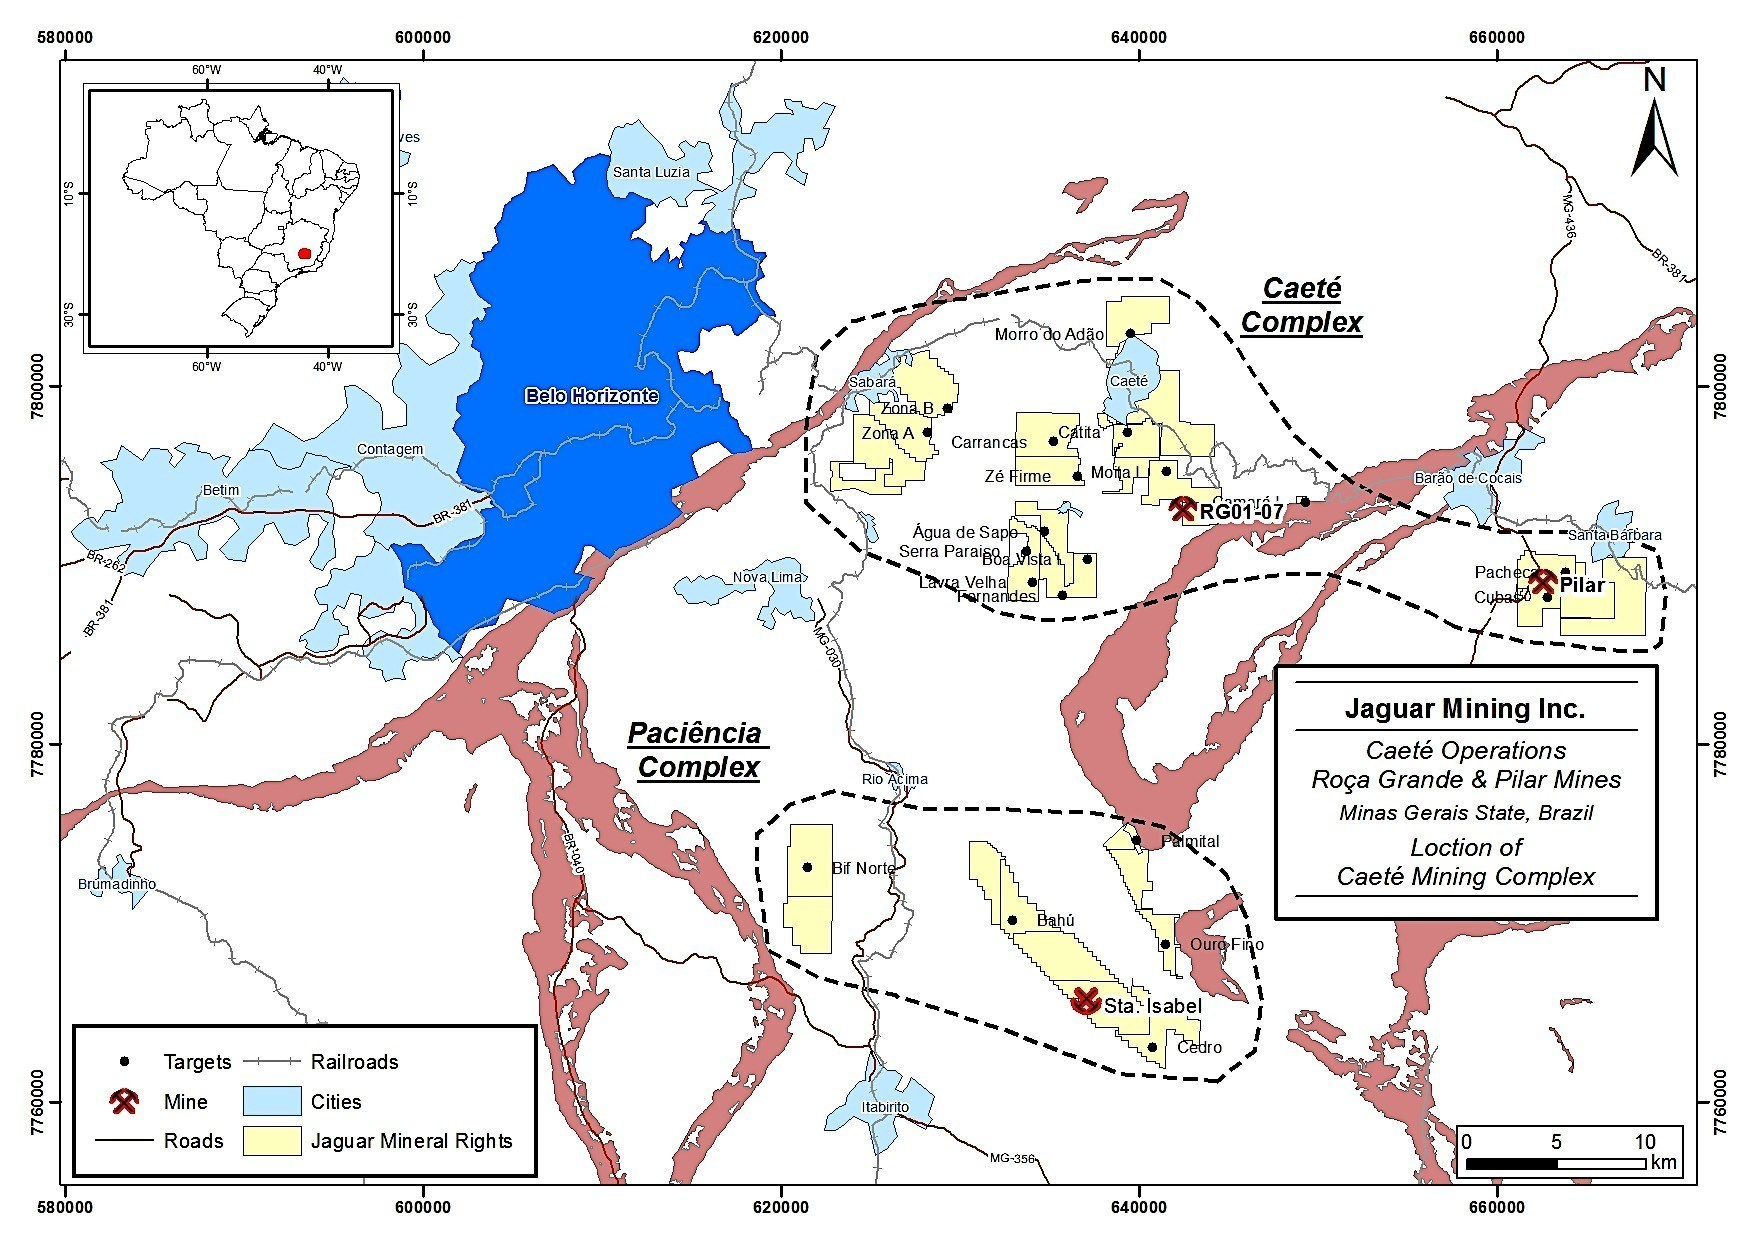 Figure 2 - Caete Complex Location Map (PRNewsFoto/Jaguar Mining Inc.)